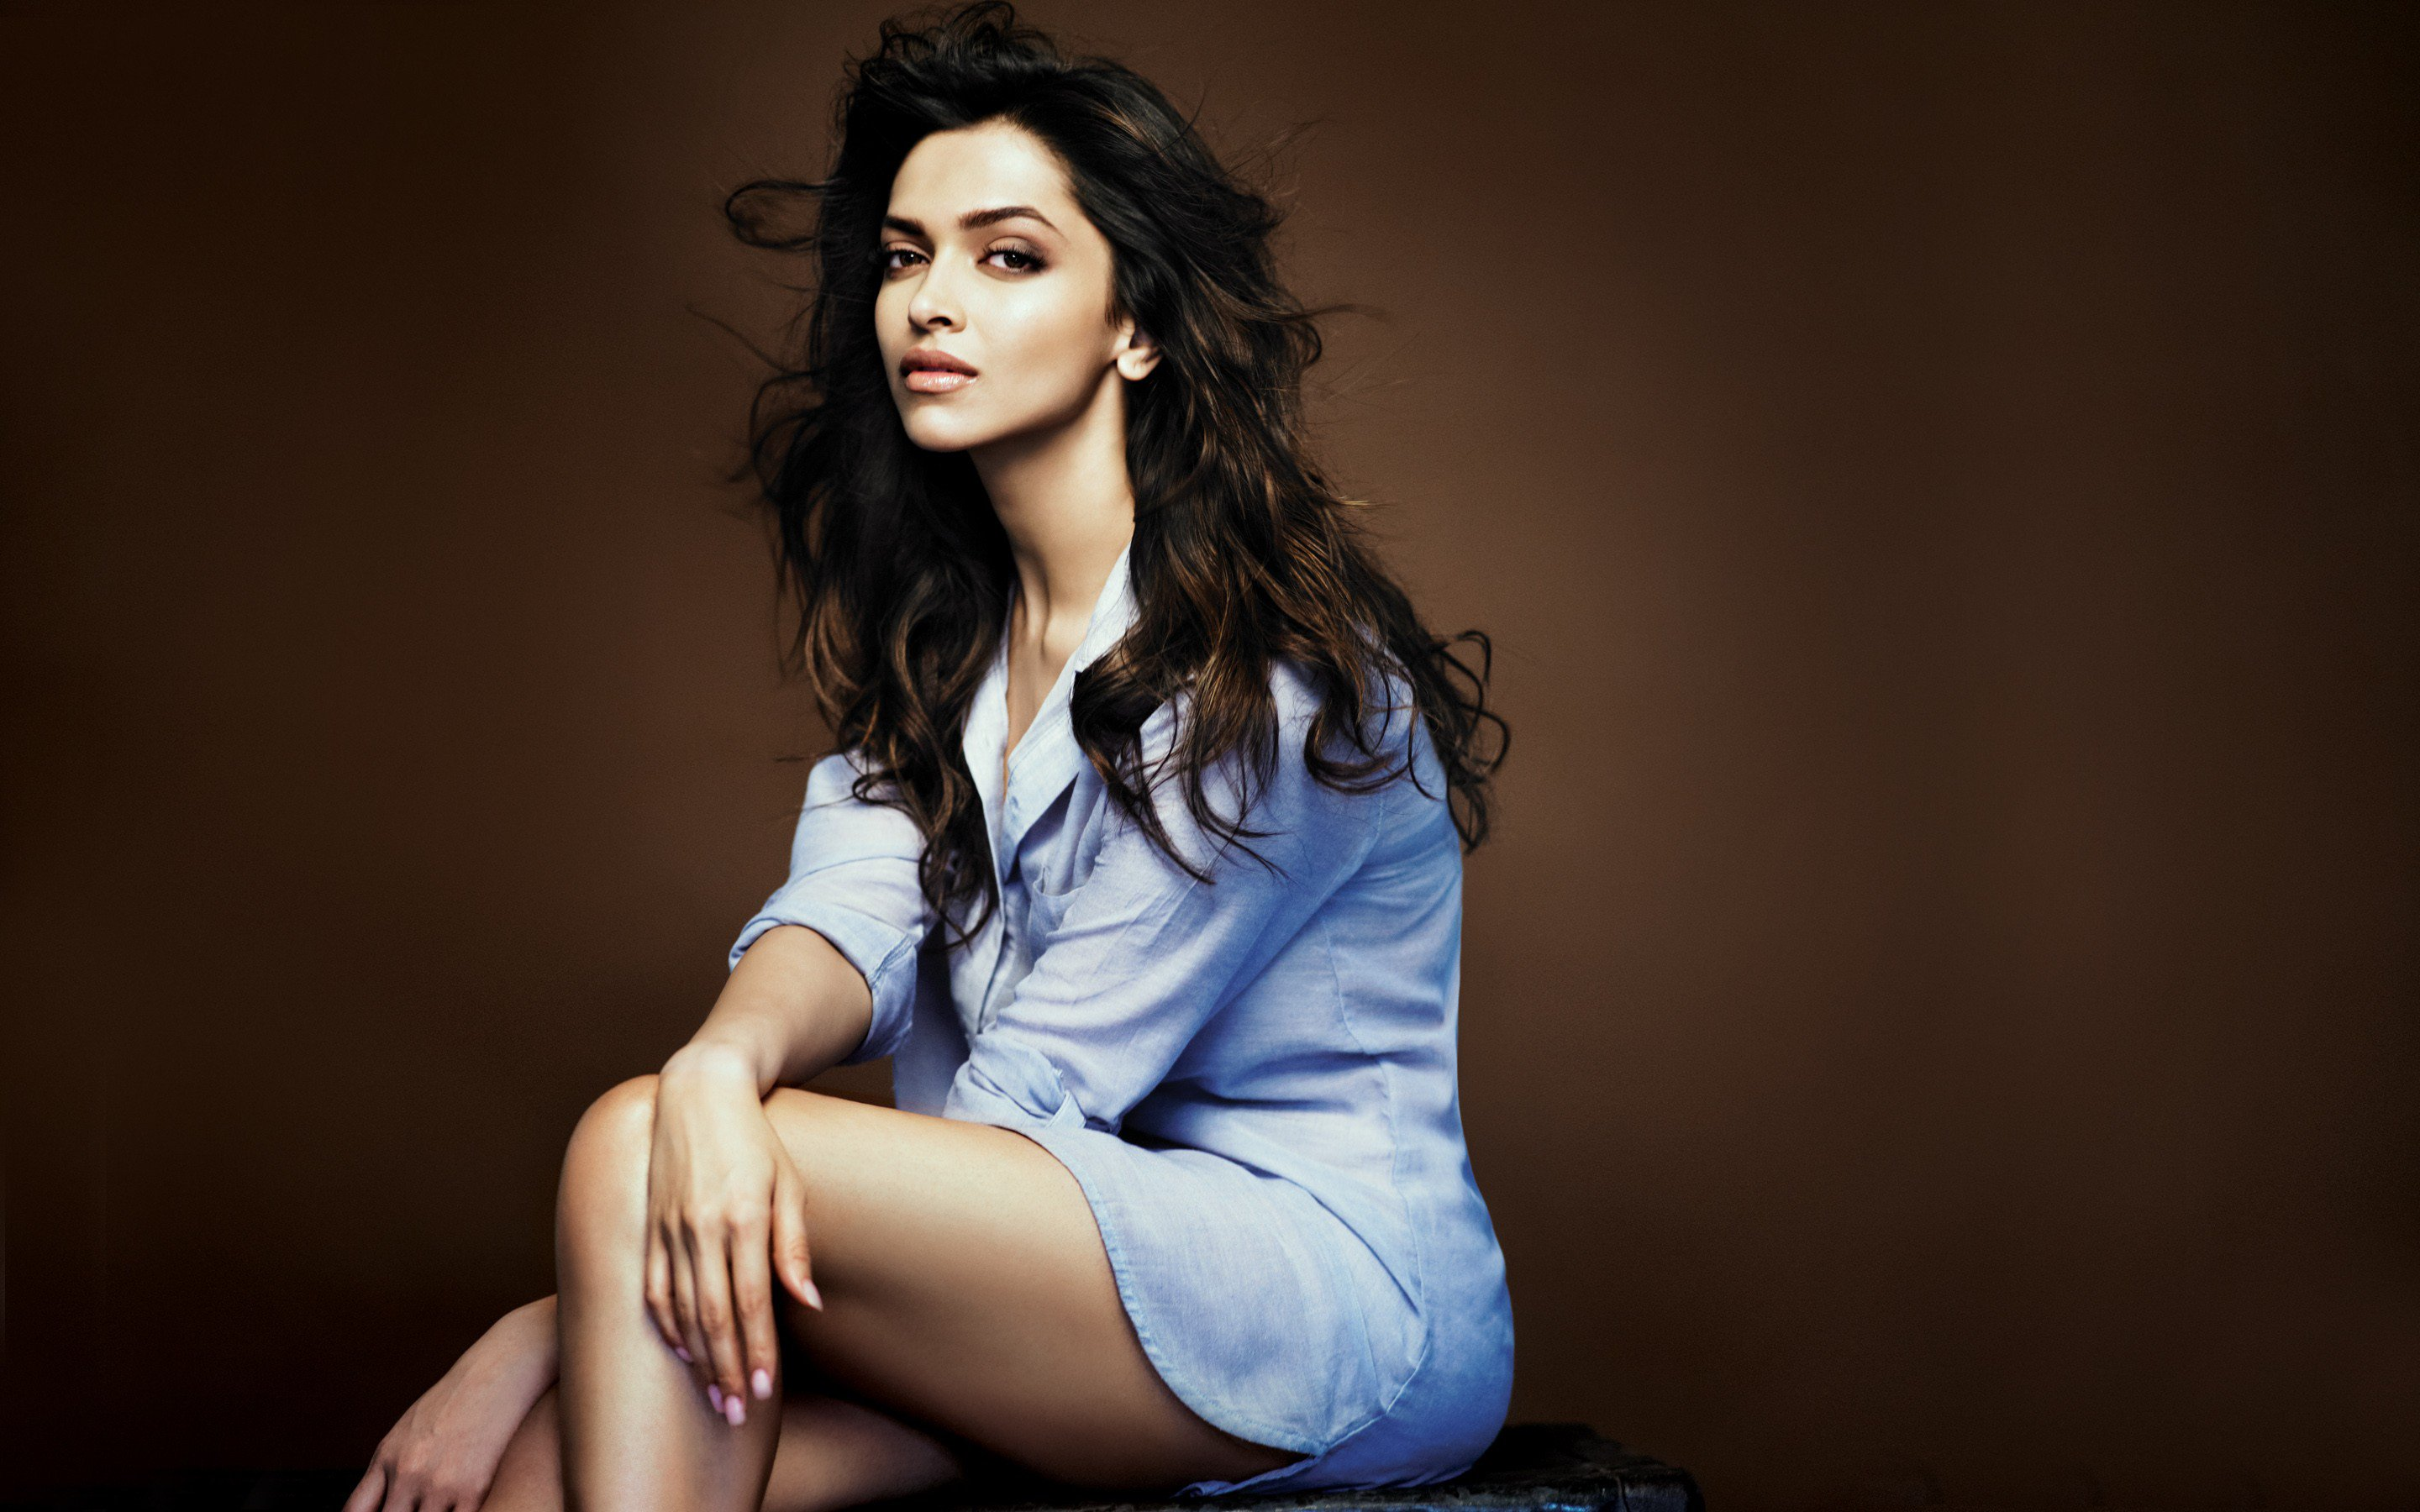 deepika padukone 2016, hd indian celebrities, 4k wallpapers, images